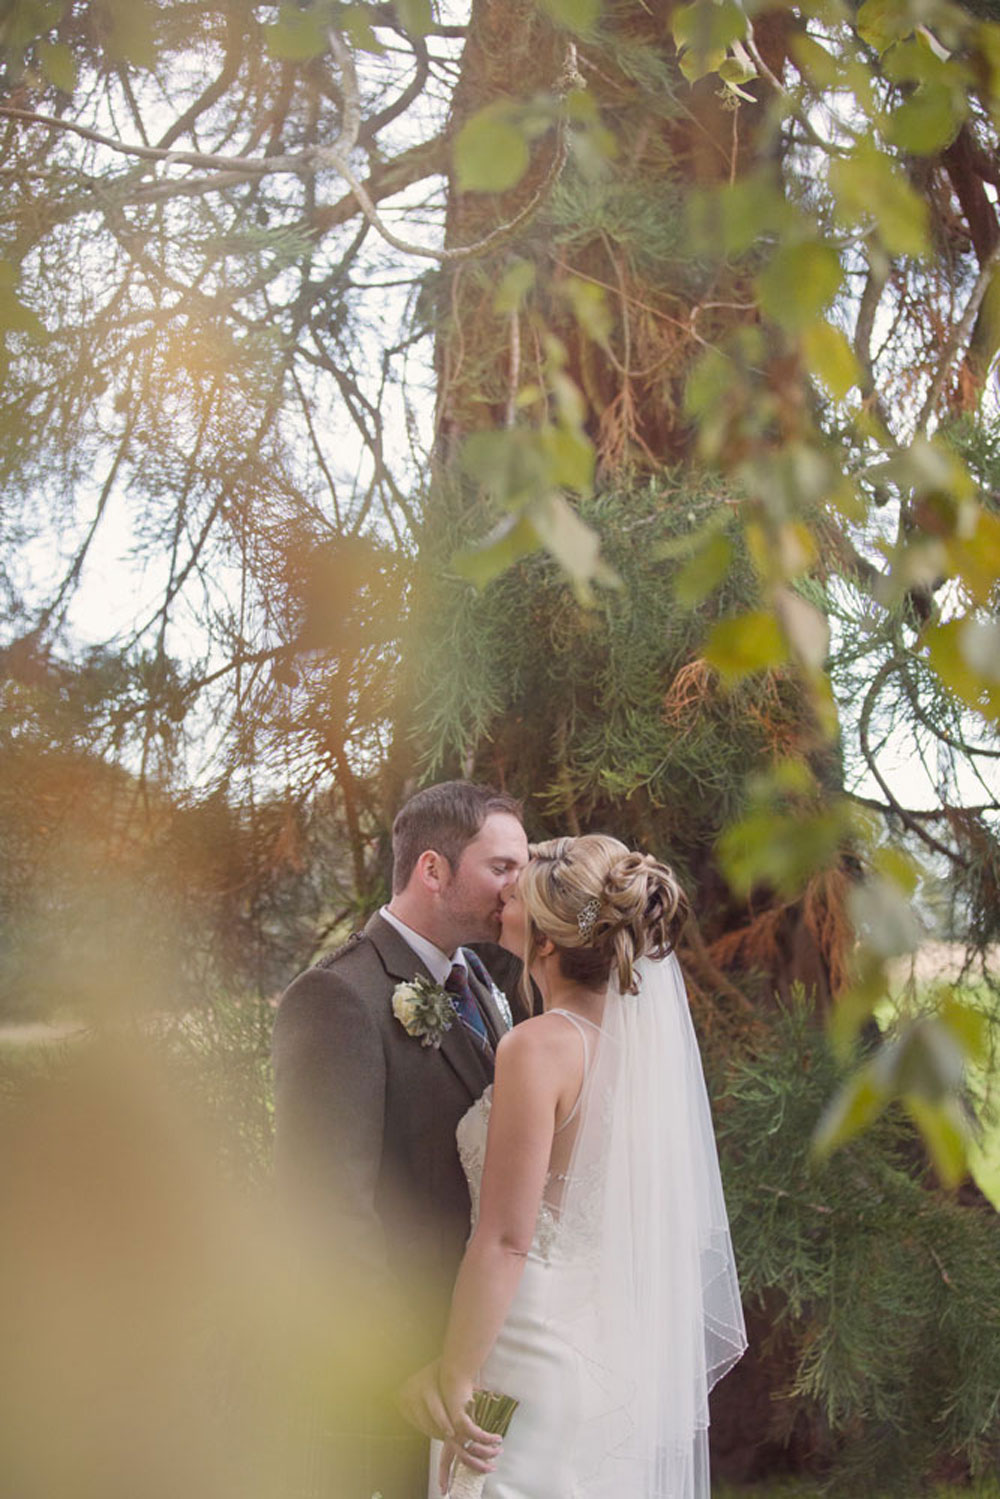 Ardoe House Hotel wedding, bride and groom around the trees, Anna Wytrazek Photography, wedding photographer Aberdeen